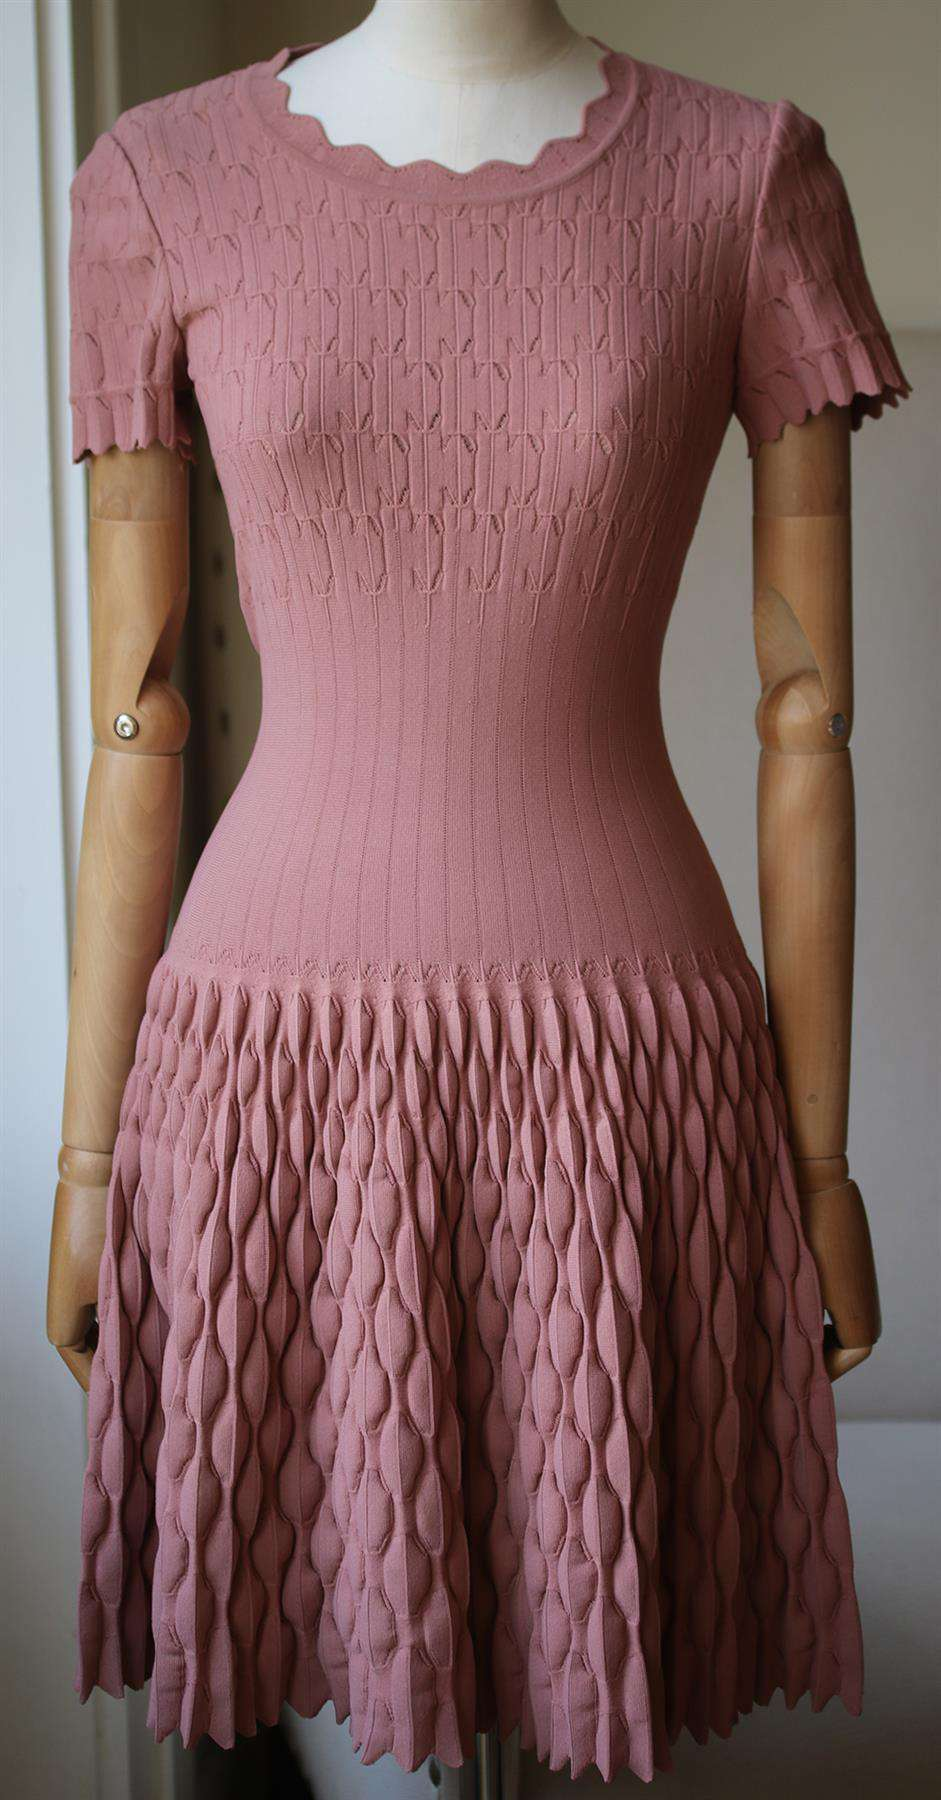 AZZEDINE ALAÏA KNITTED MINI DRESS FR 38 UK 10